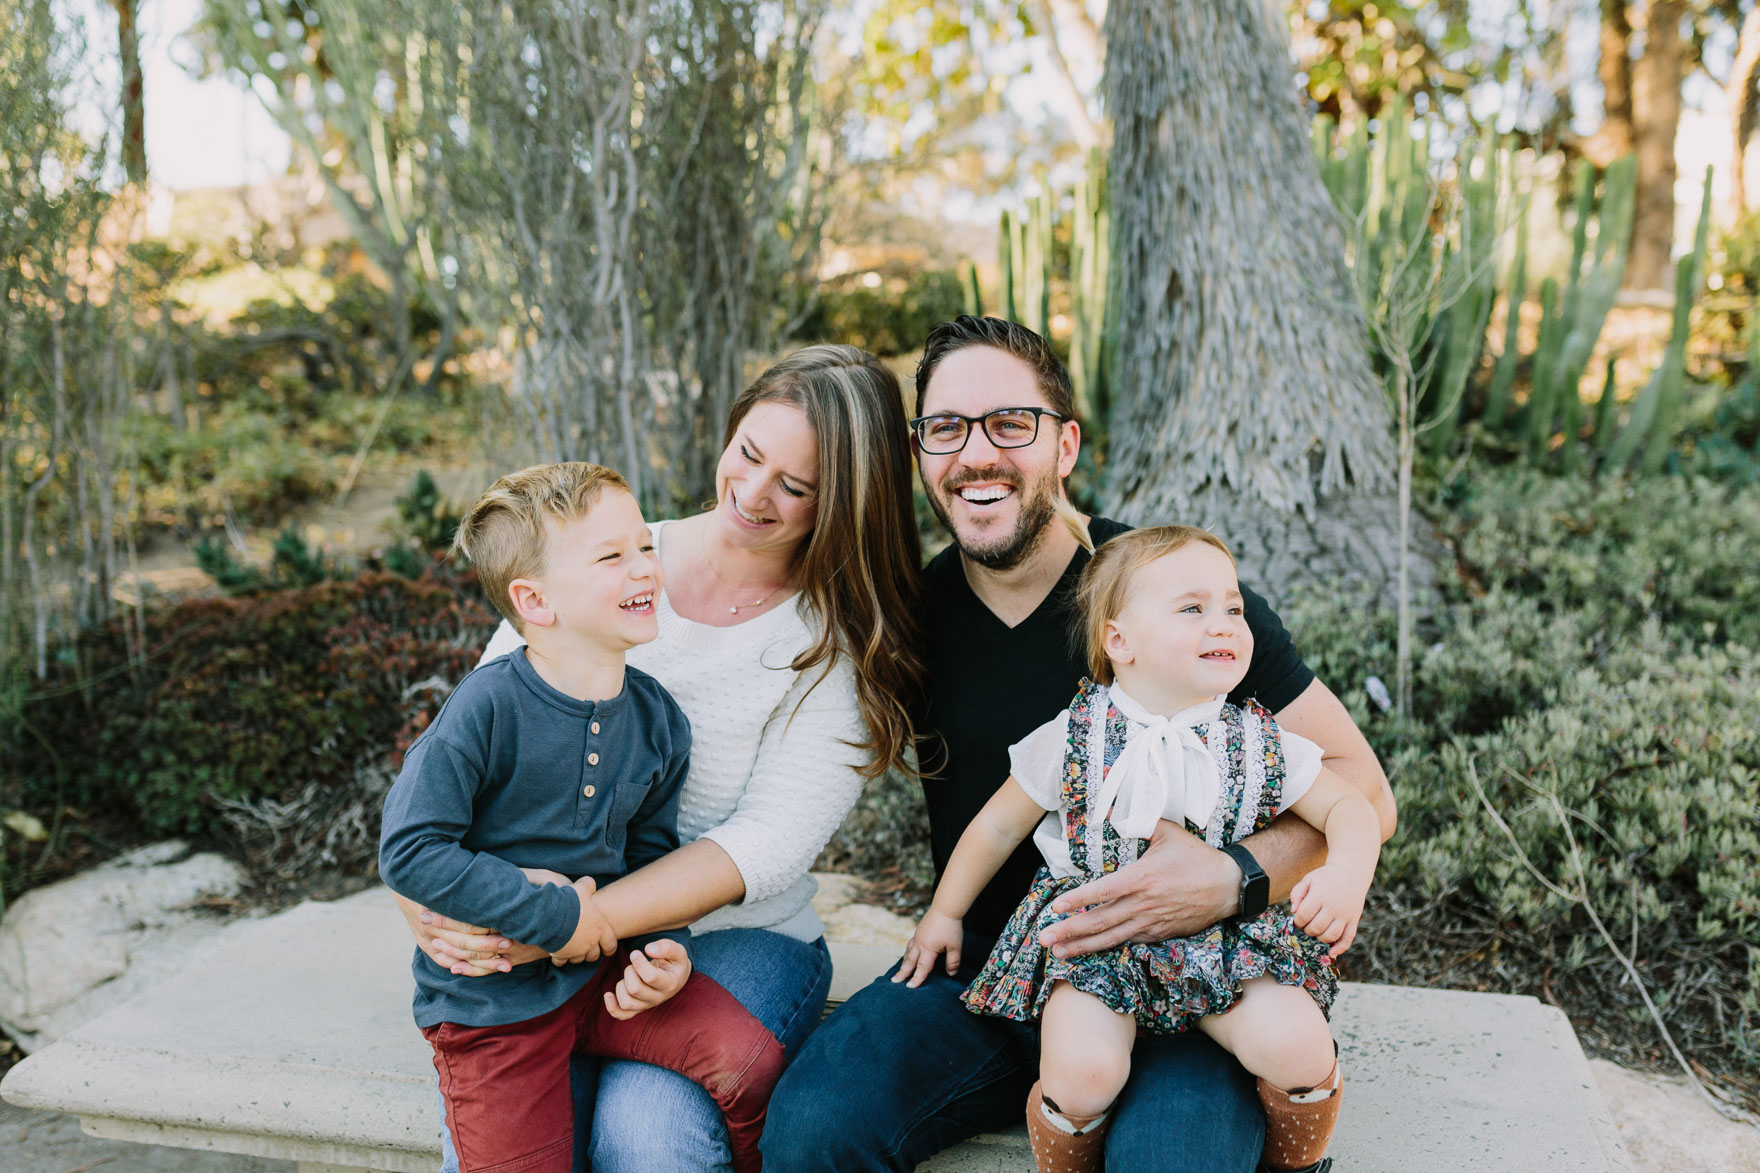 Family Fun in the Cactus Garden – Photo by Let's Frolic Together